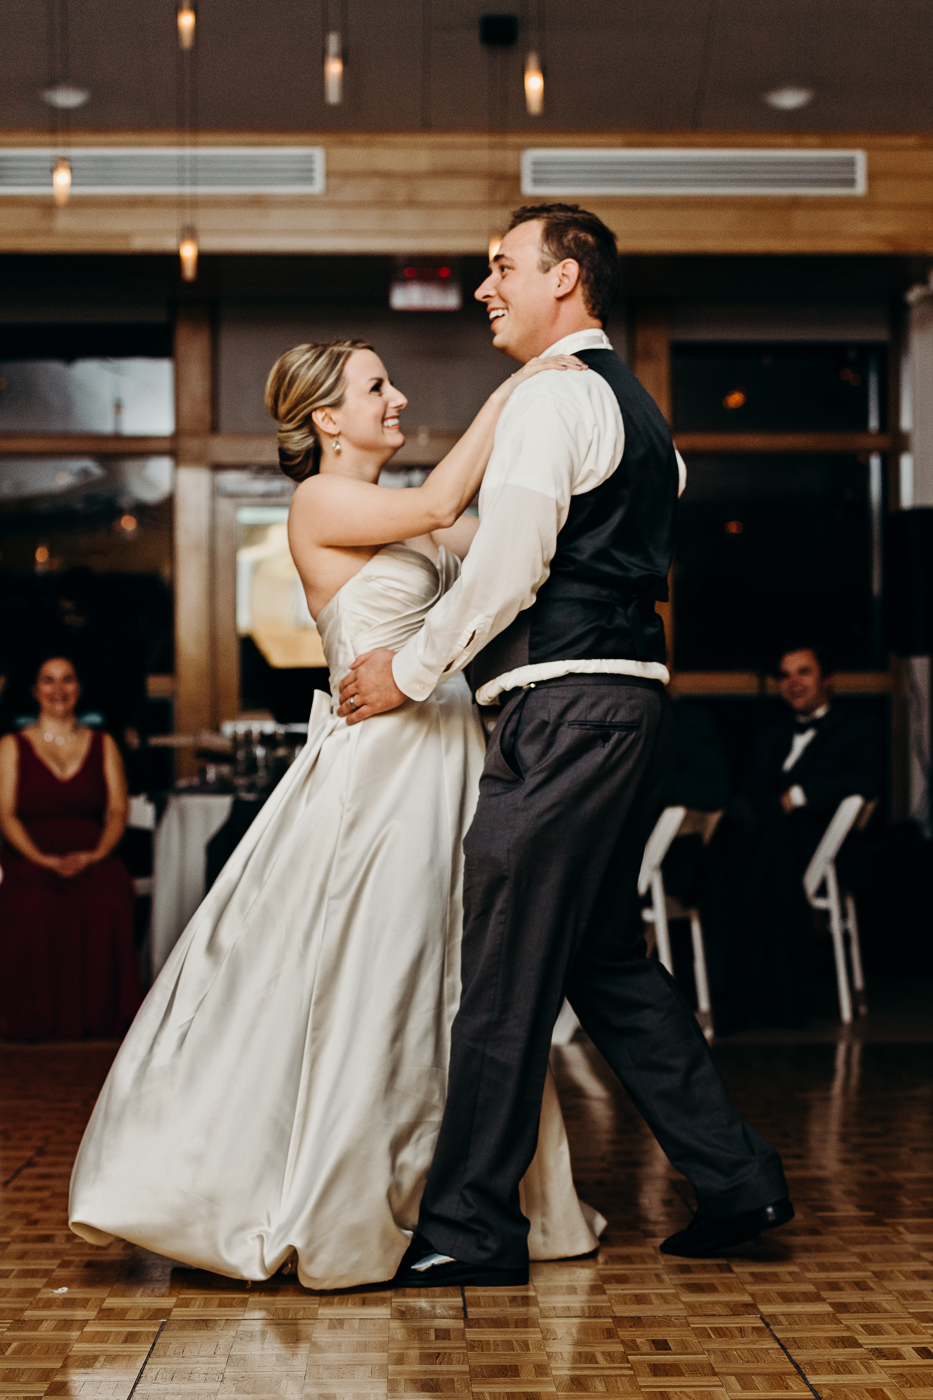 Bride and groom dance for the first time as husband and wife